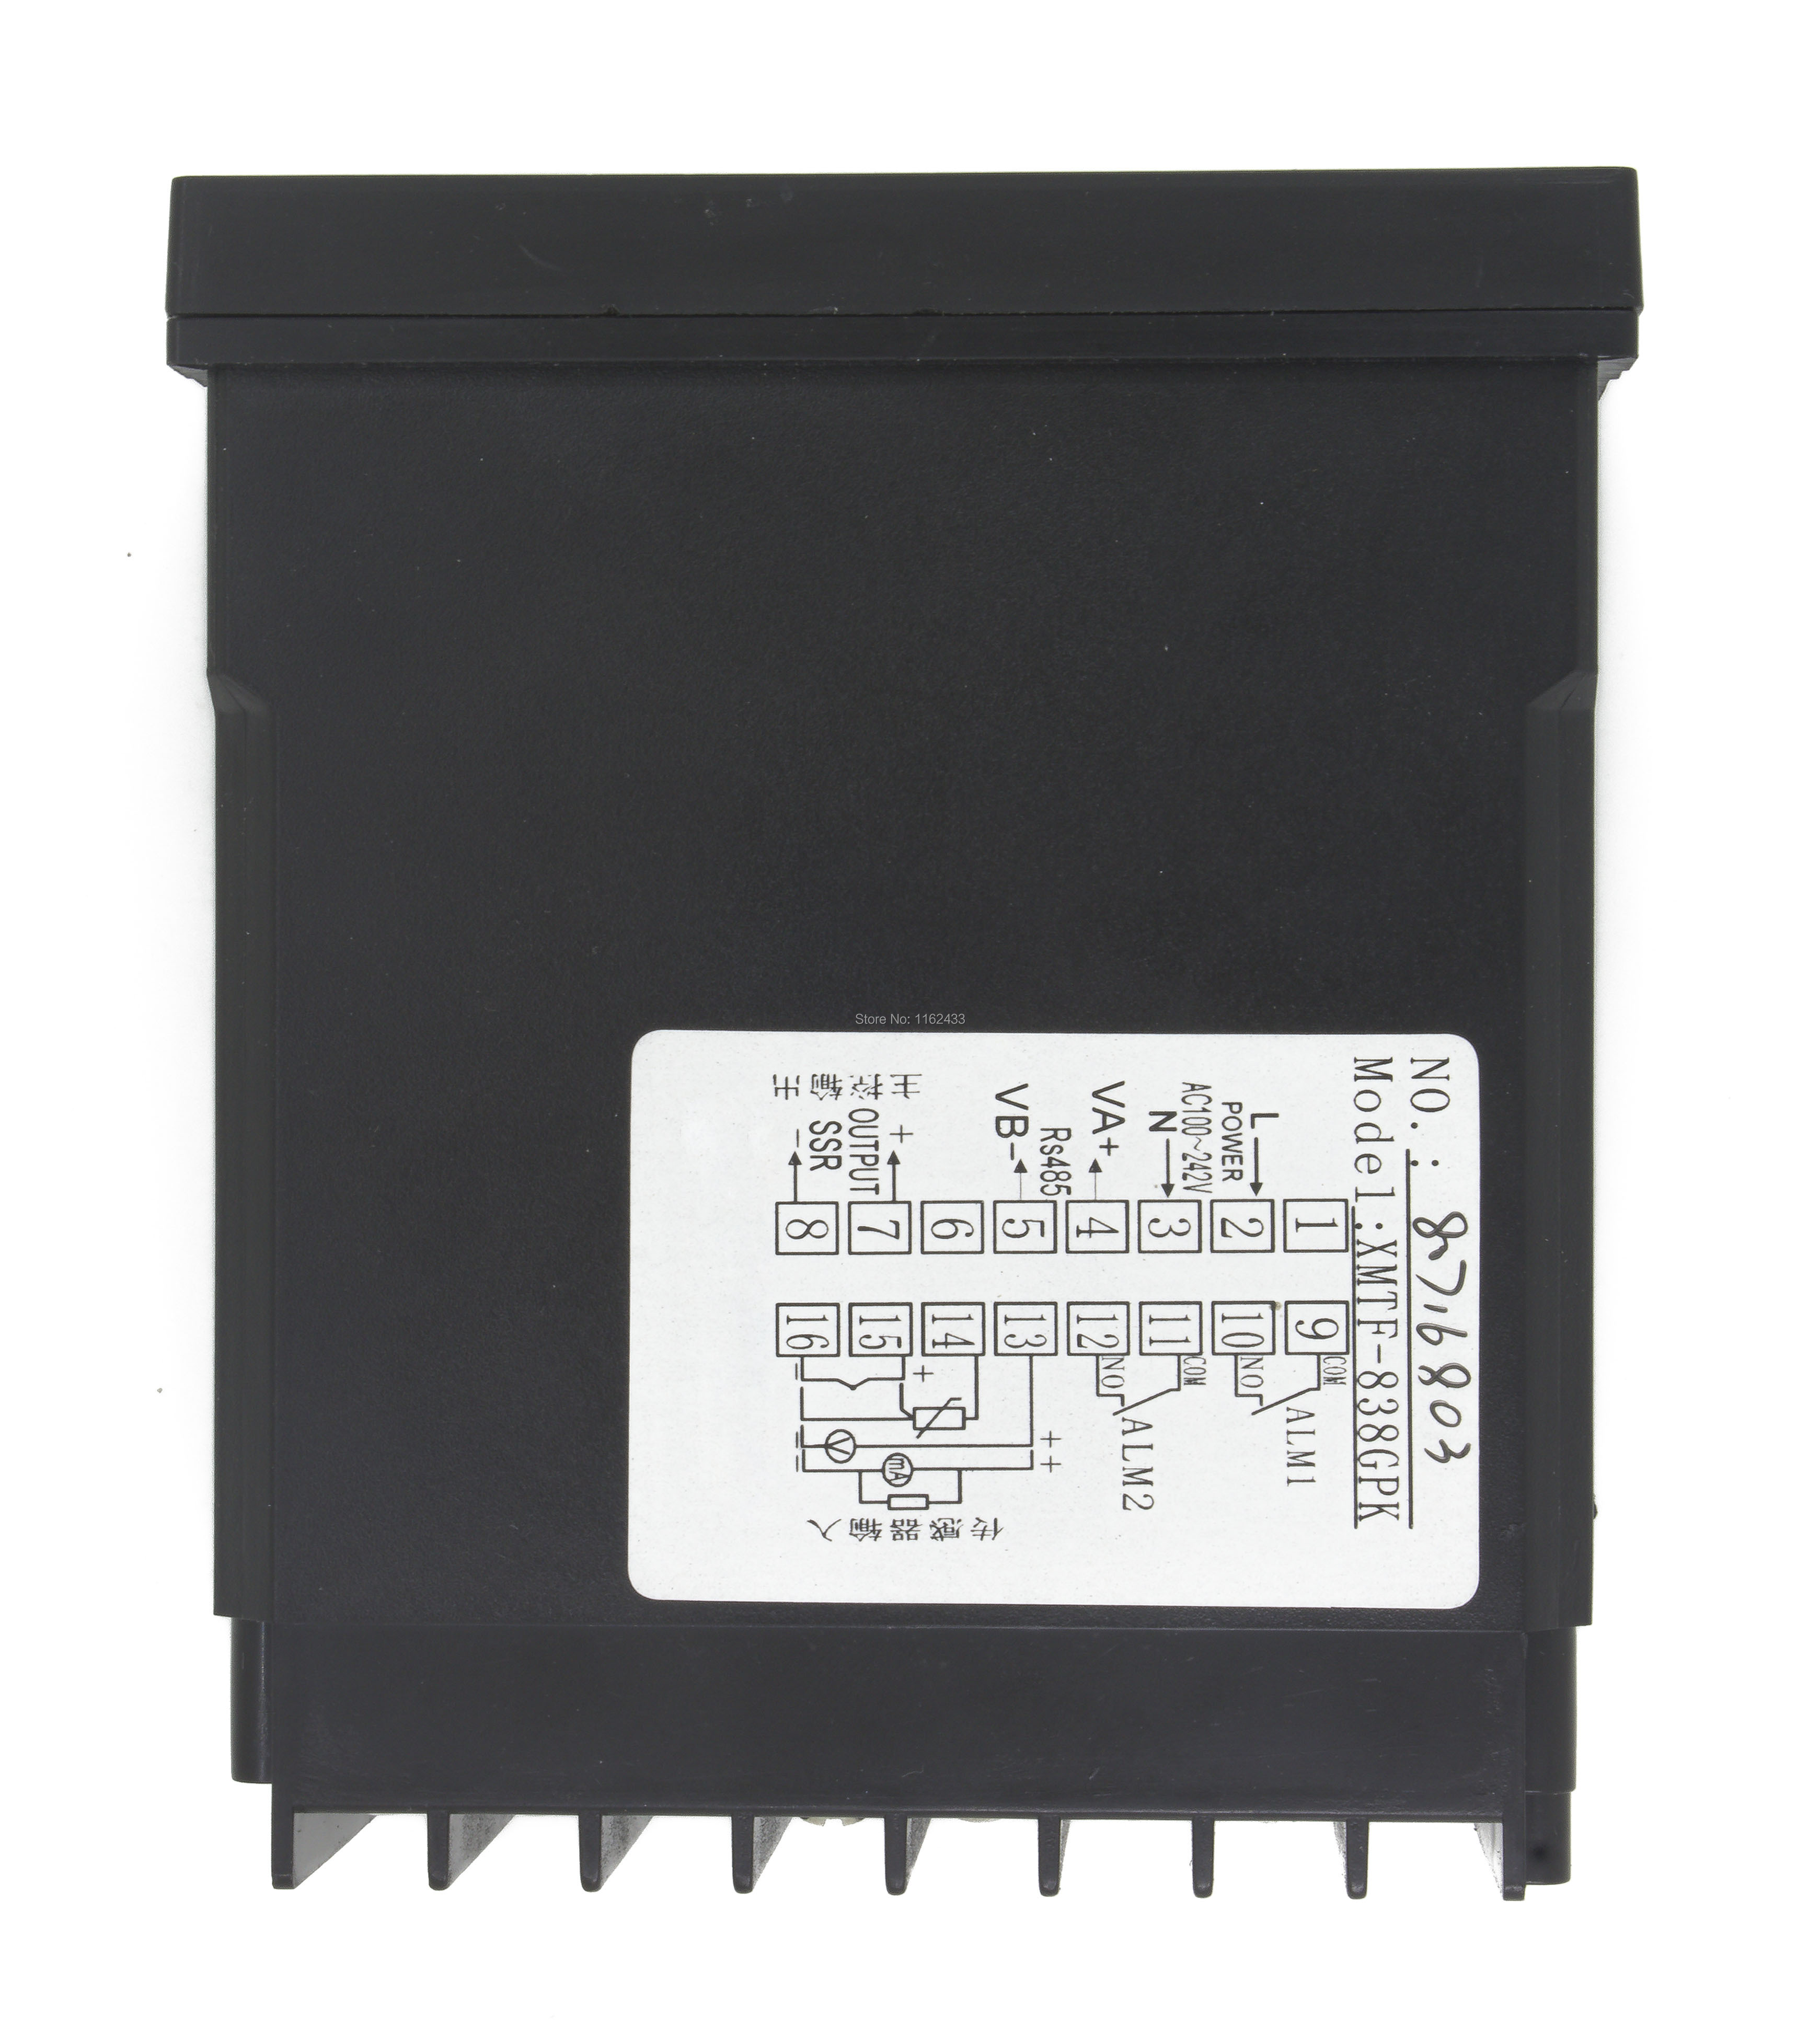 hight resolution of xmtf 8 rs485 modbus interface ramp soak digital temperature controller relay ssr 0 22ma scr output in temperature instruments from tools on aliexpress com